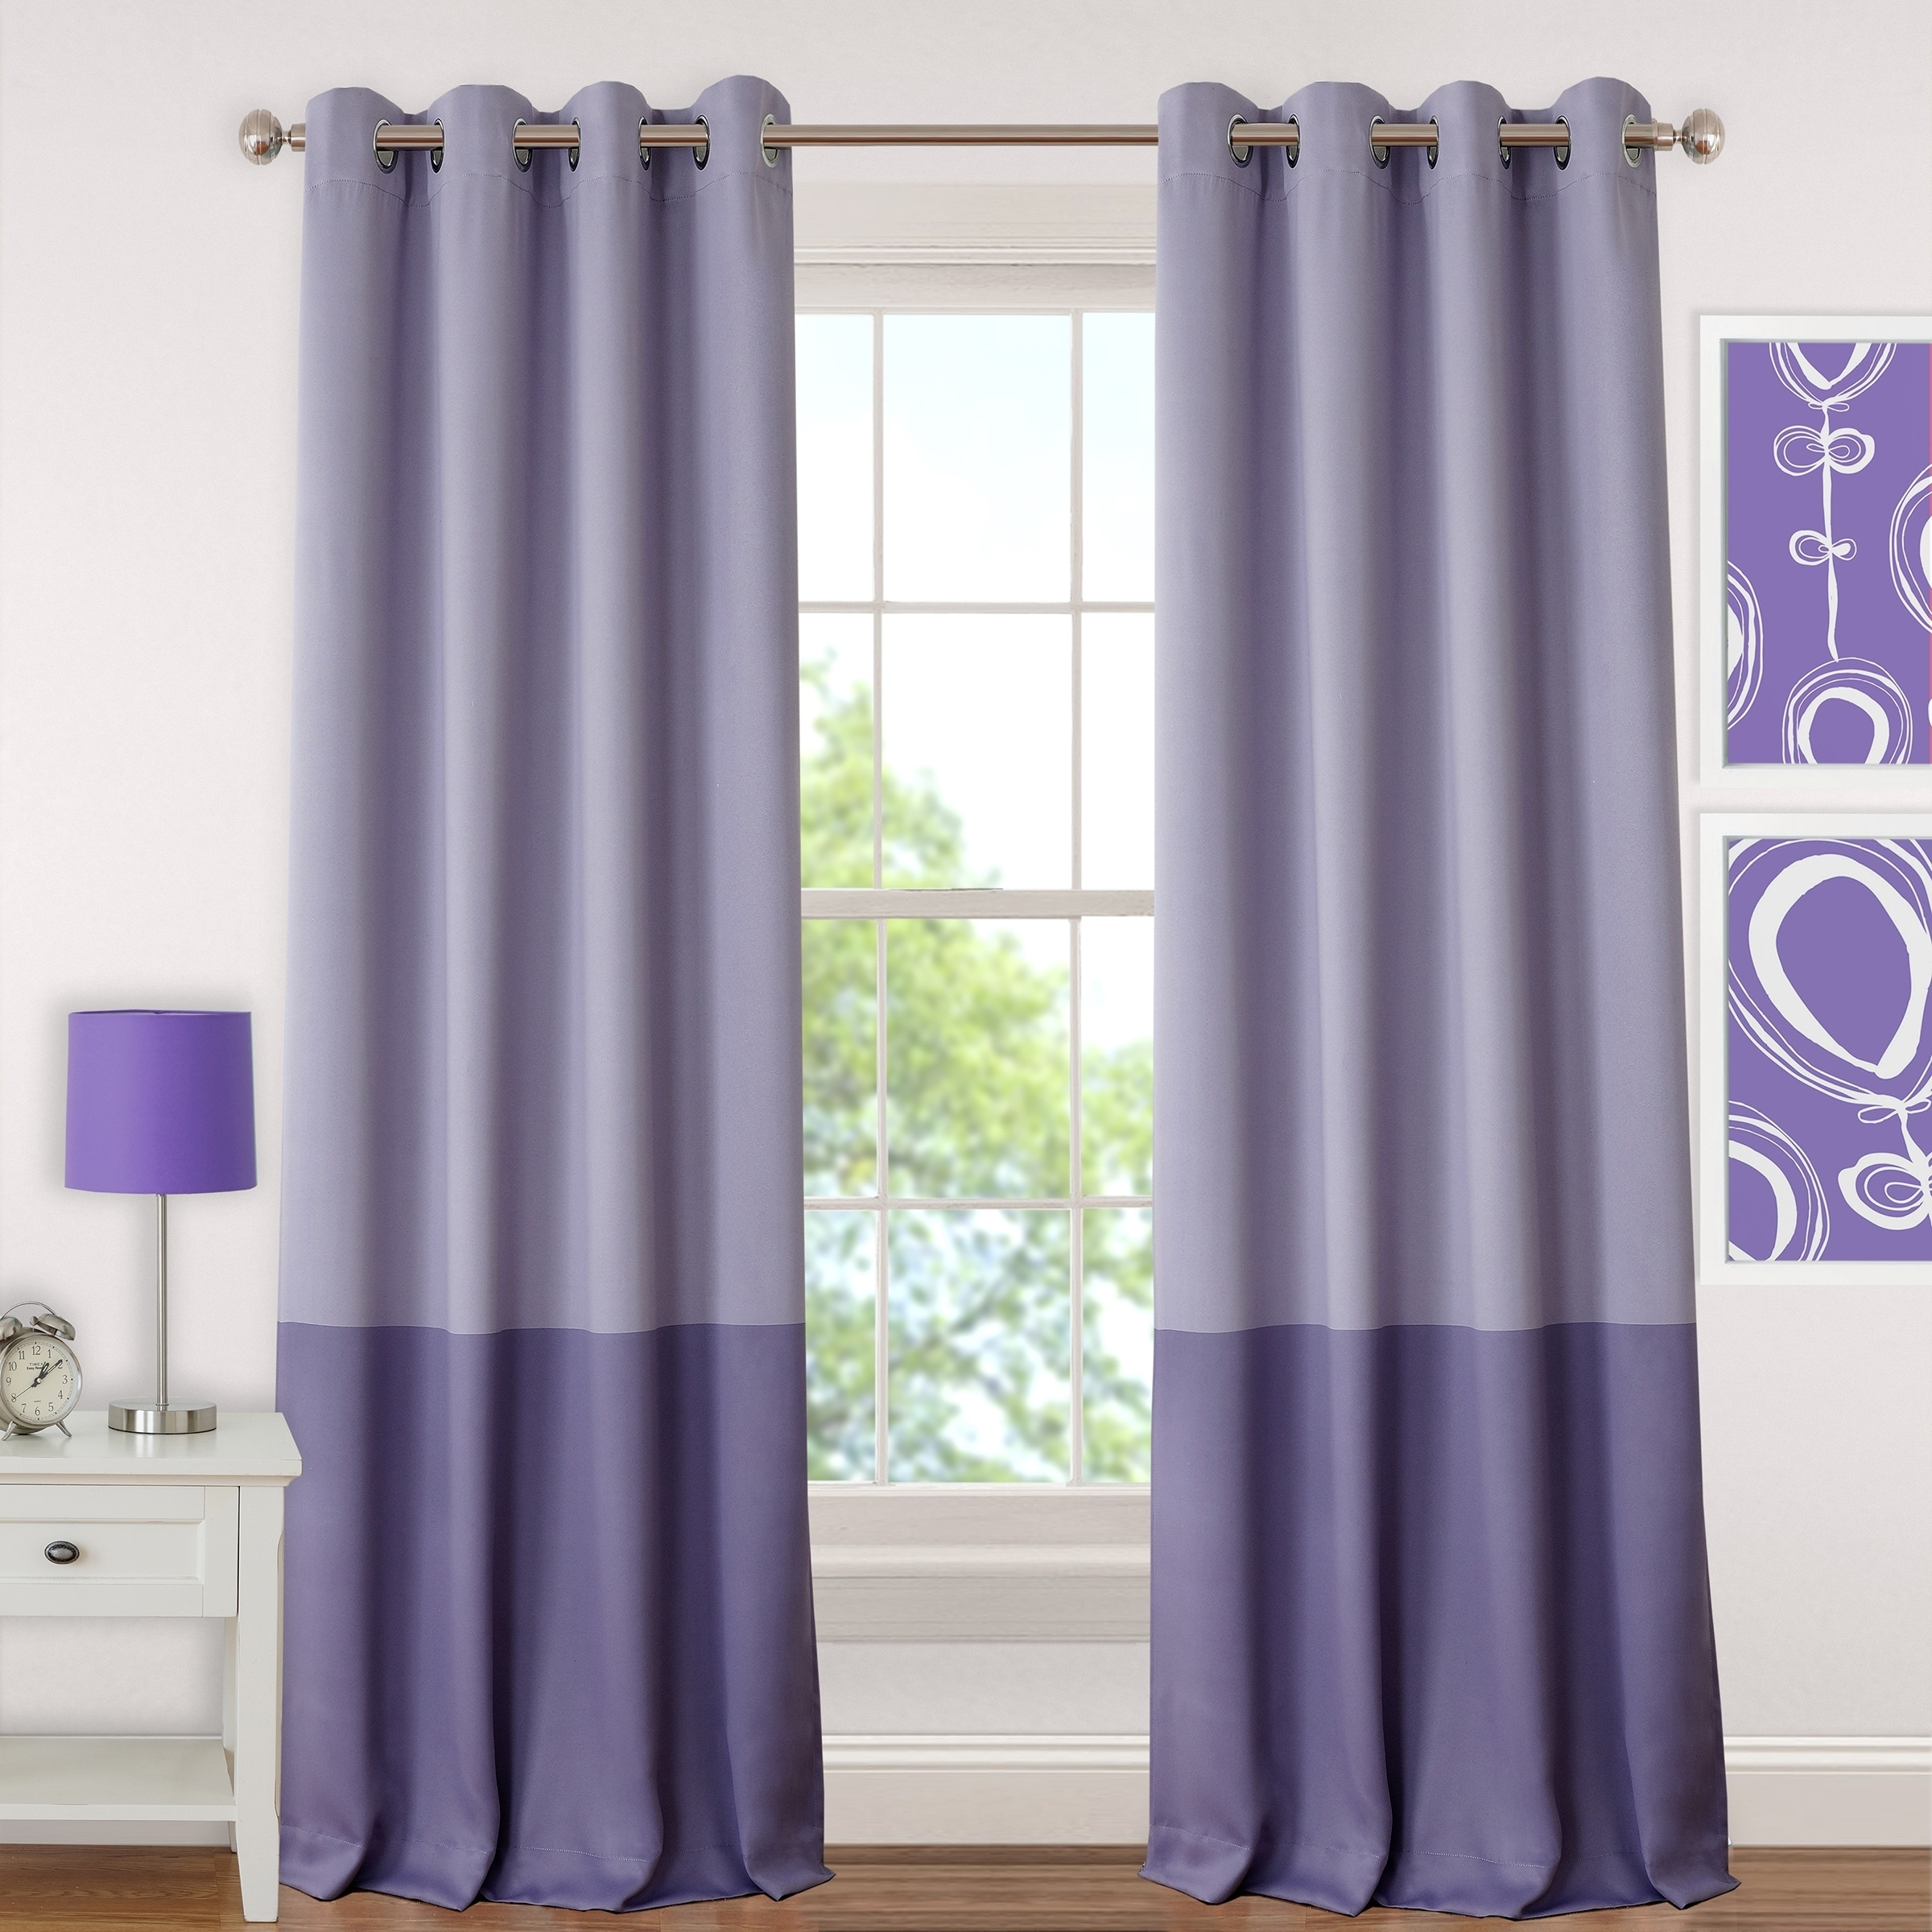 curtains no indian x red pin curtain or sheer drape selections ring cms top drapes sari violet inches panel purple piece lining